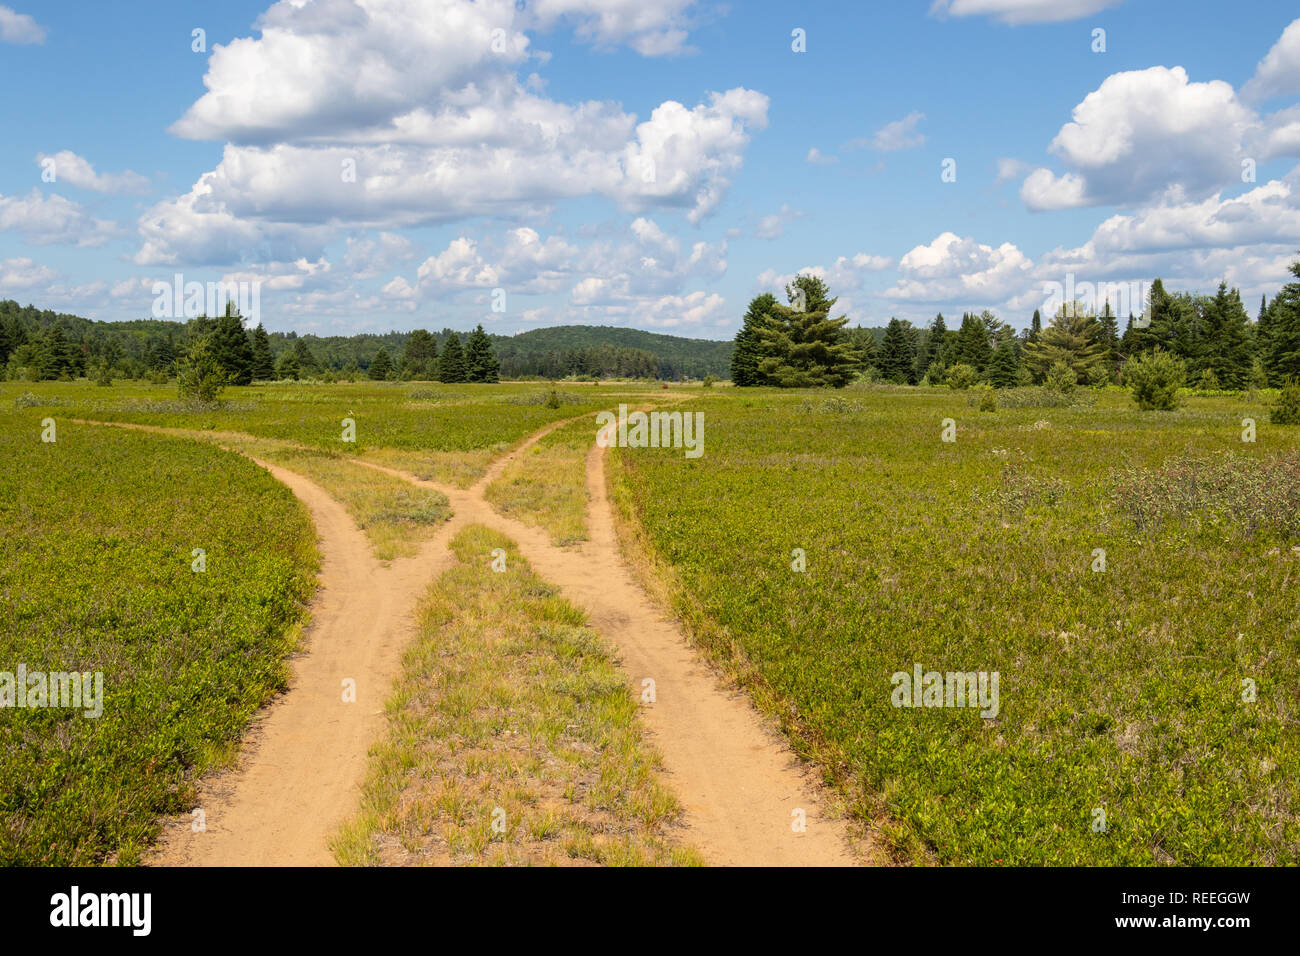 City Market Moab >> Paths Crossing Stock Photos & Paths Crossing Stock Images ...